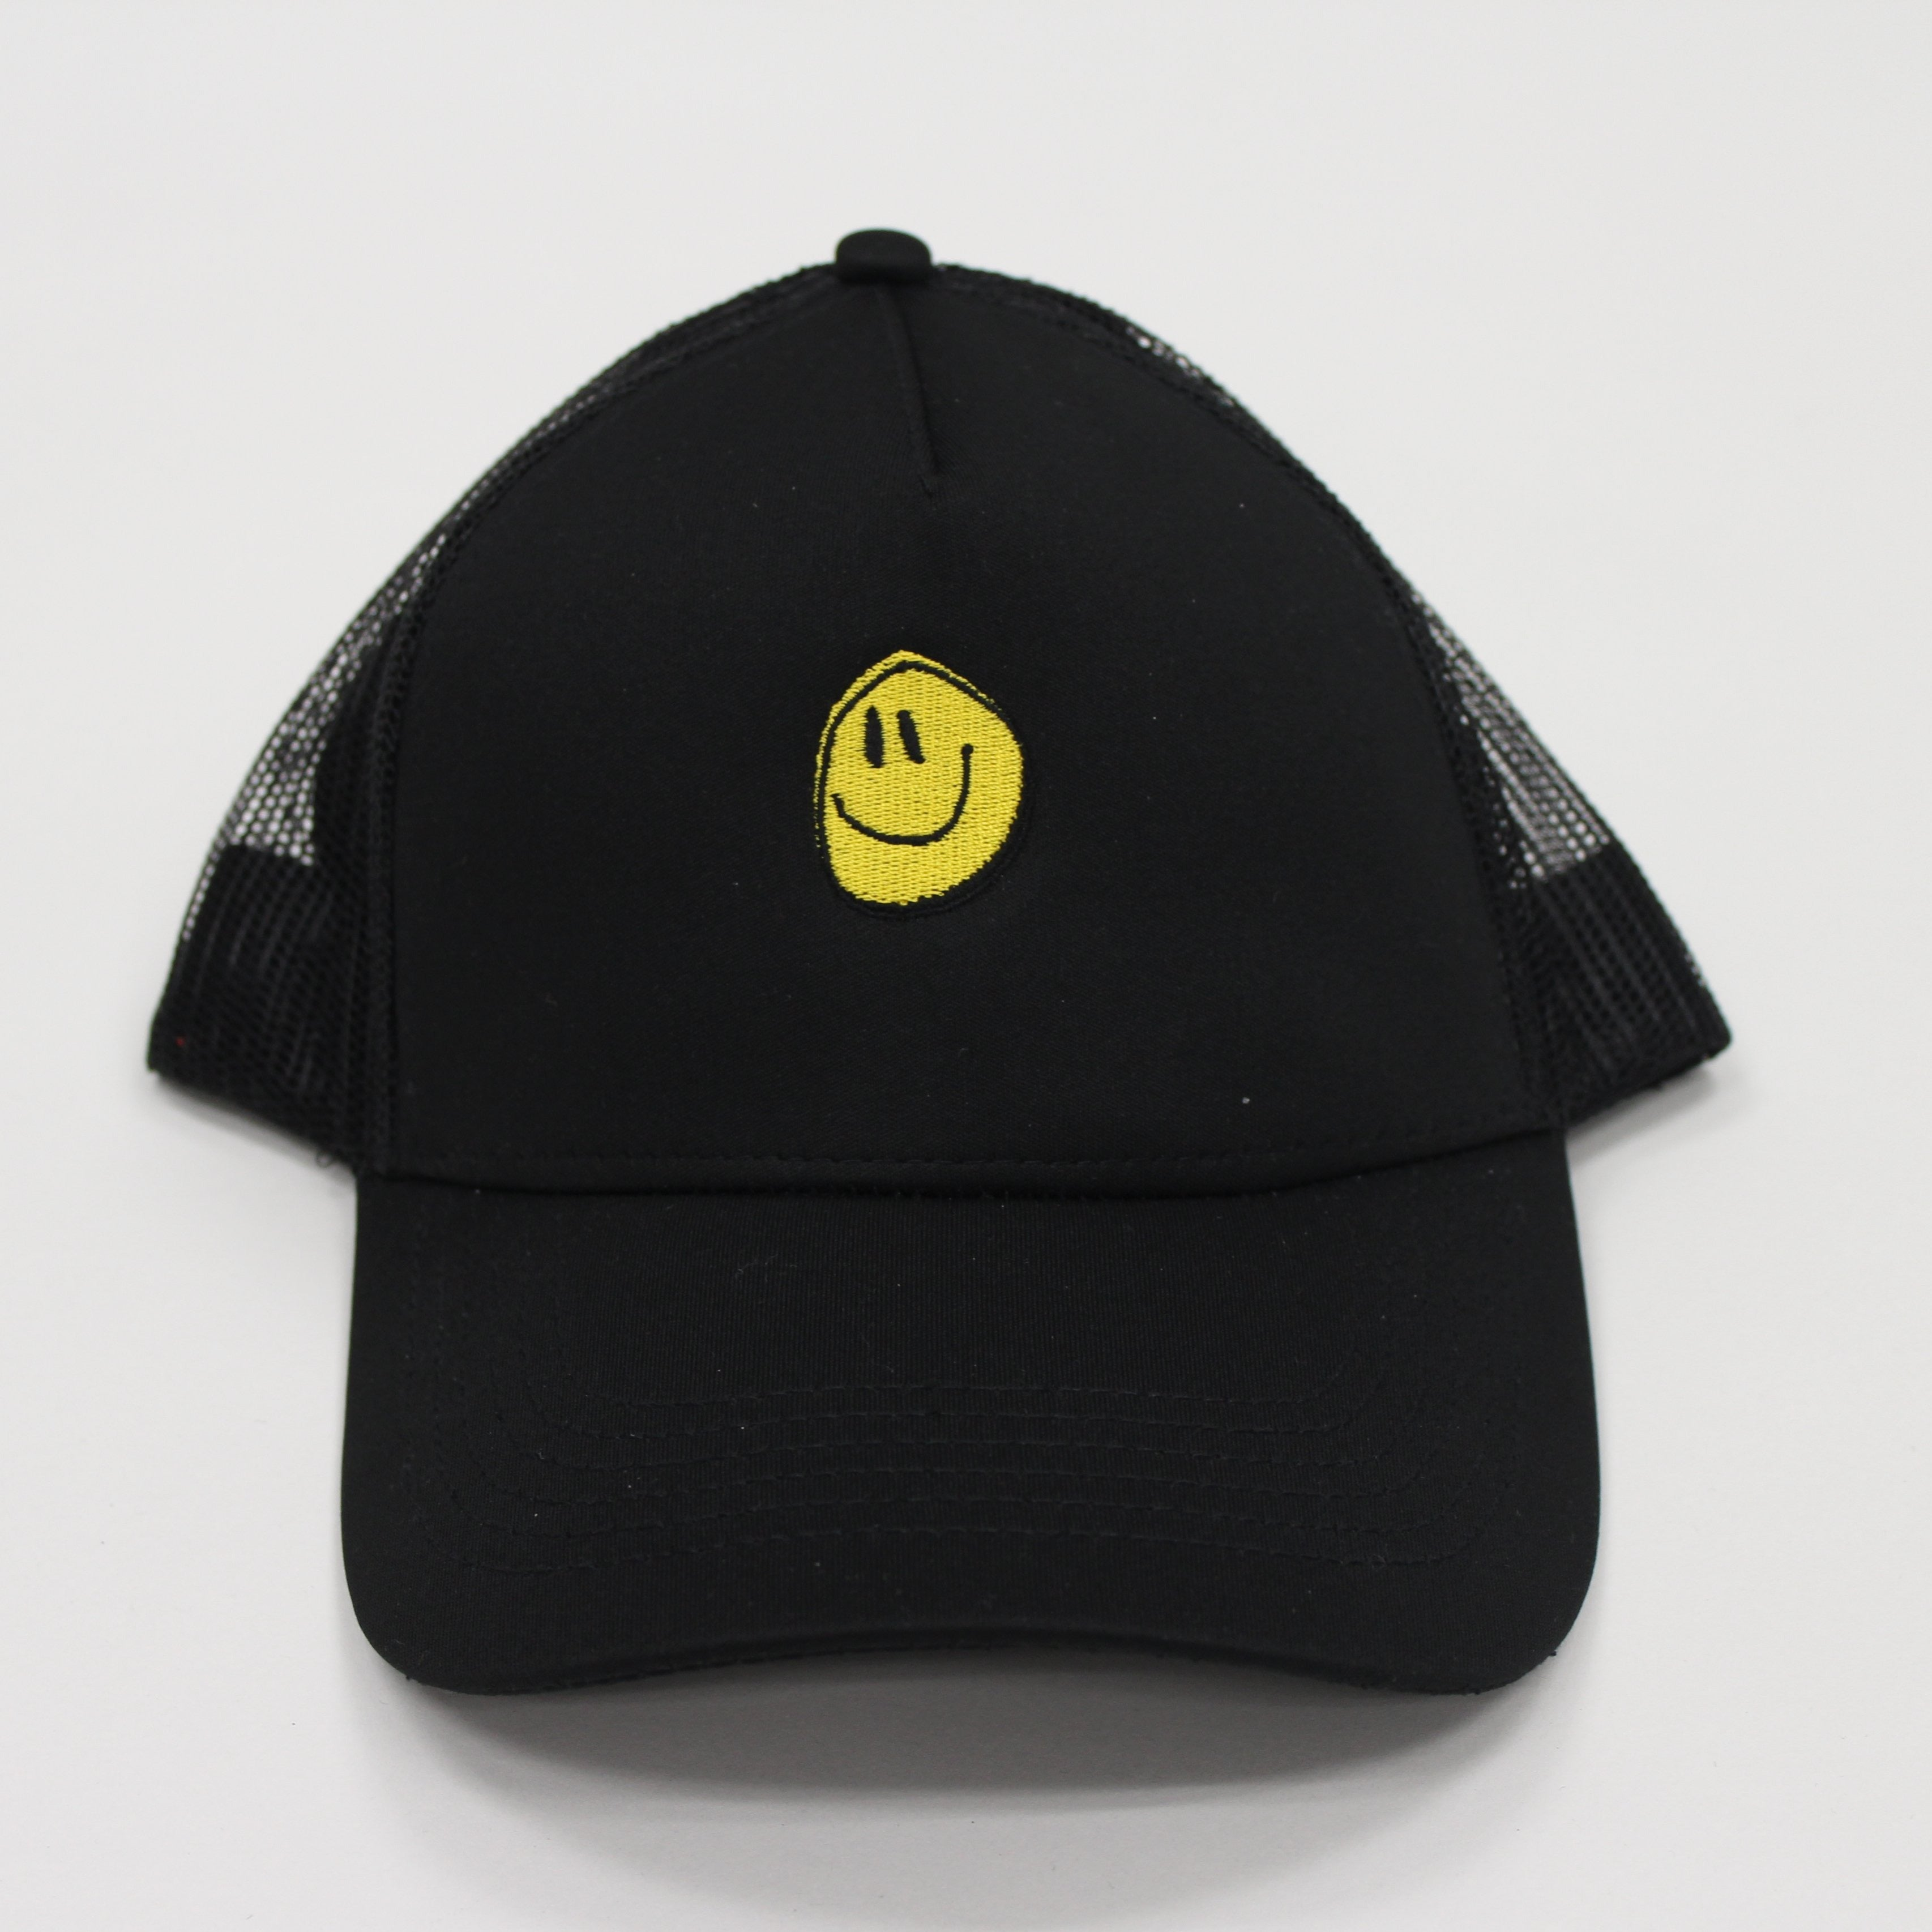 the SMILEY hat